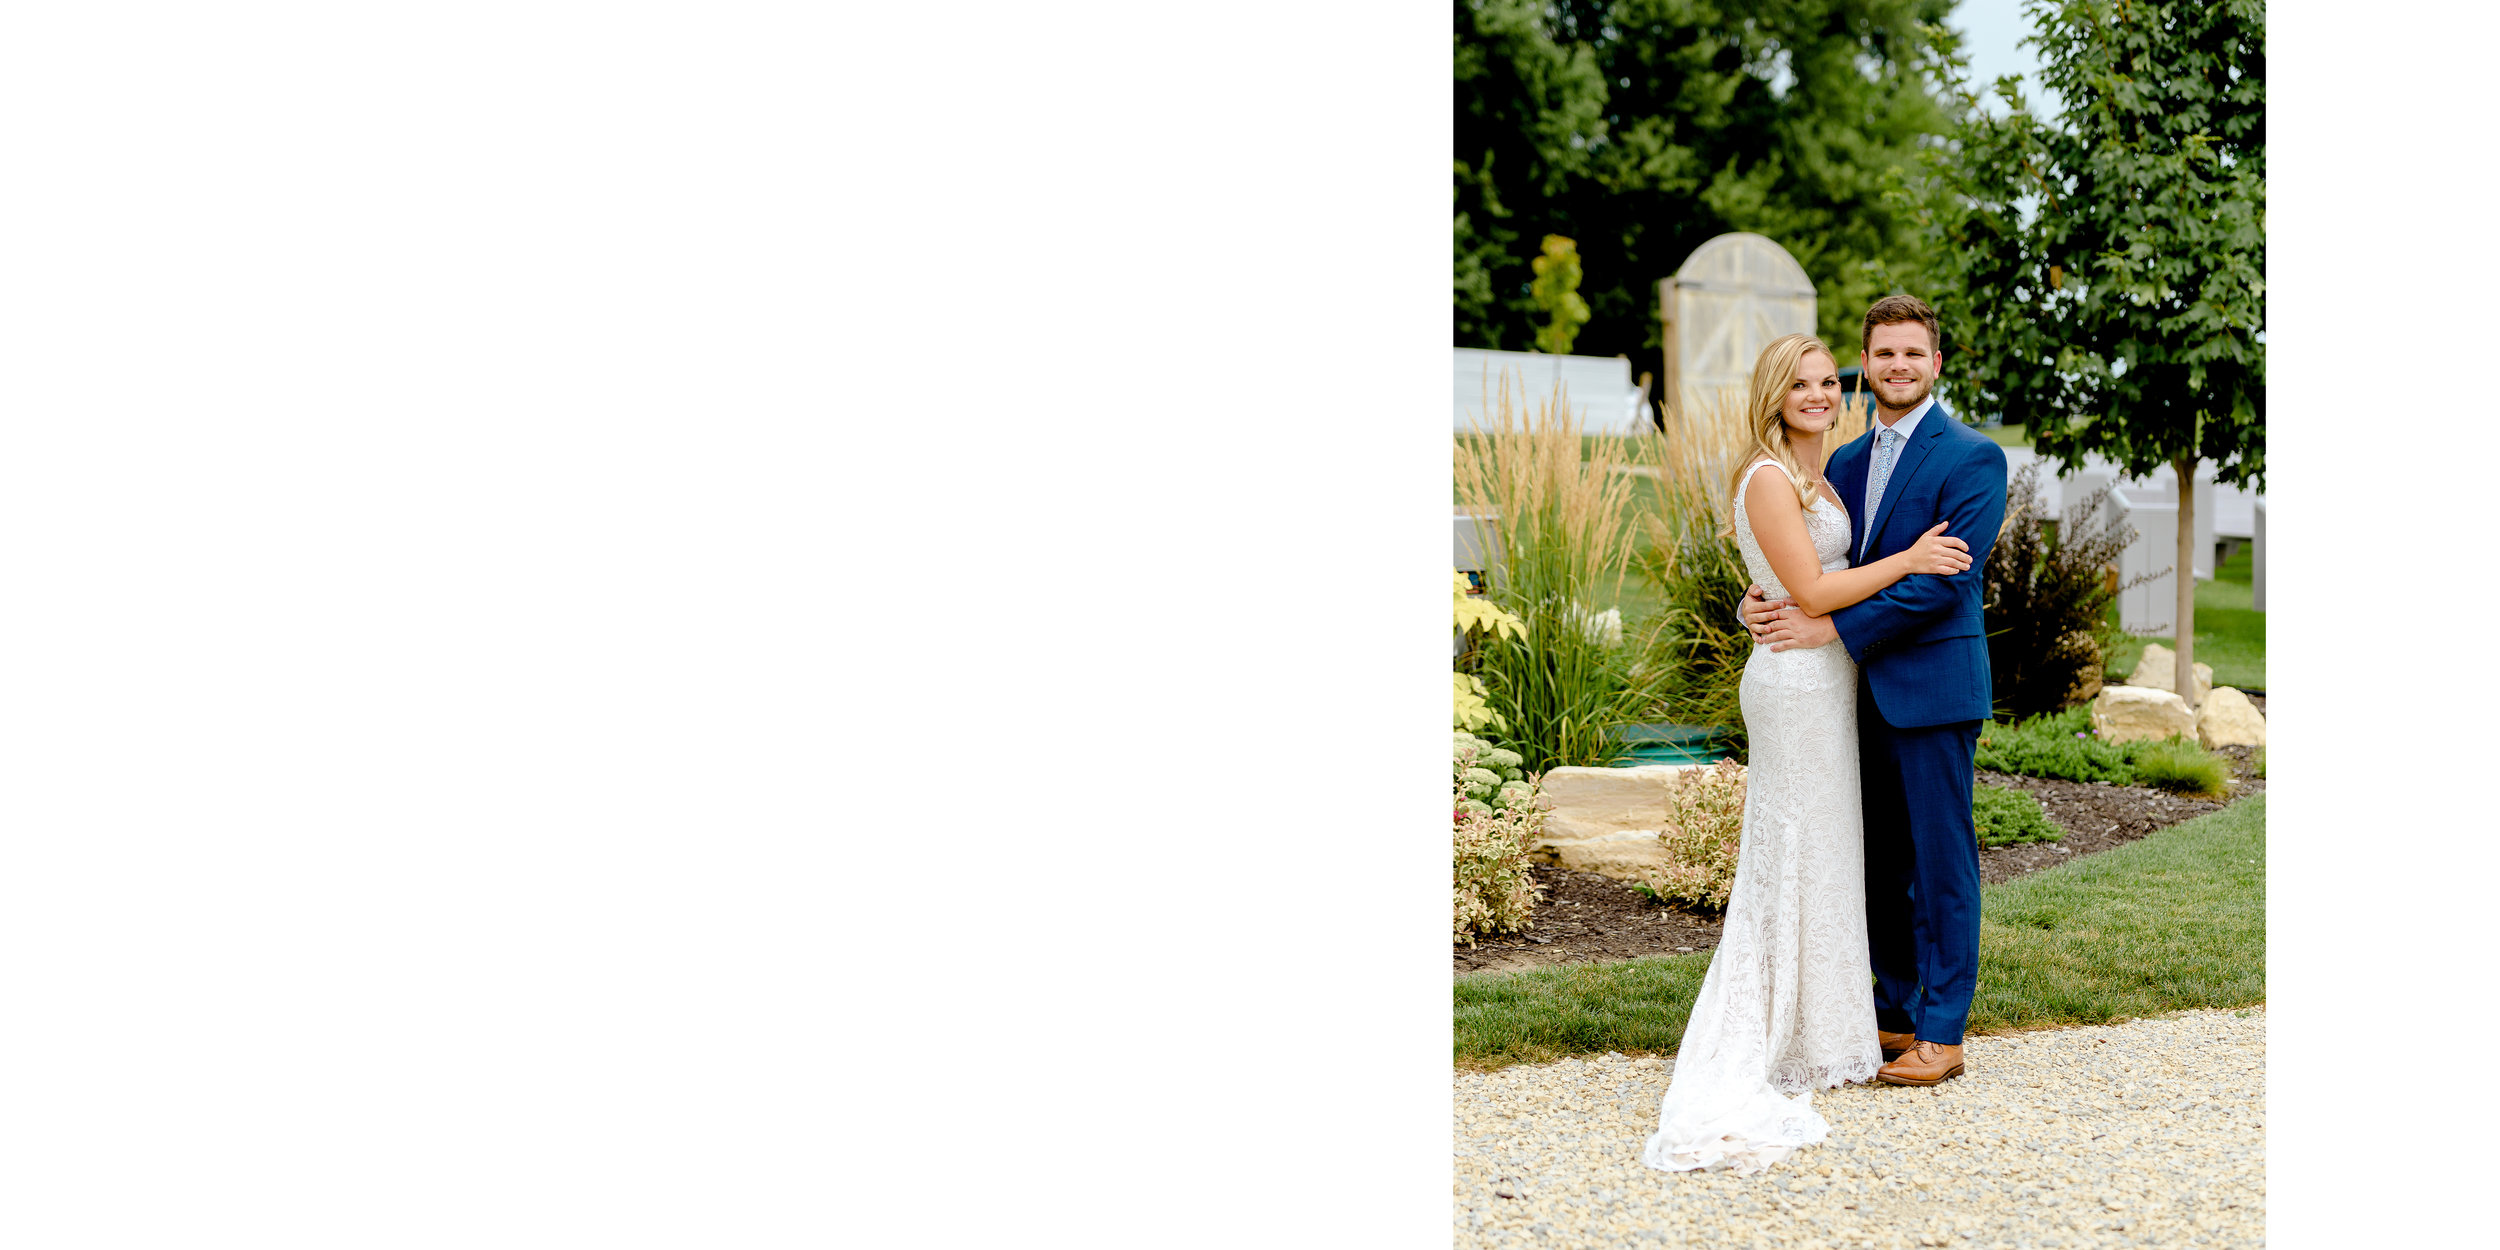 Ashley + Justin - Wedding Album_01.jpg